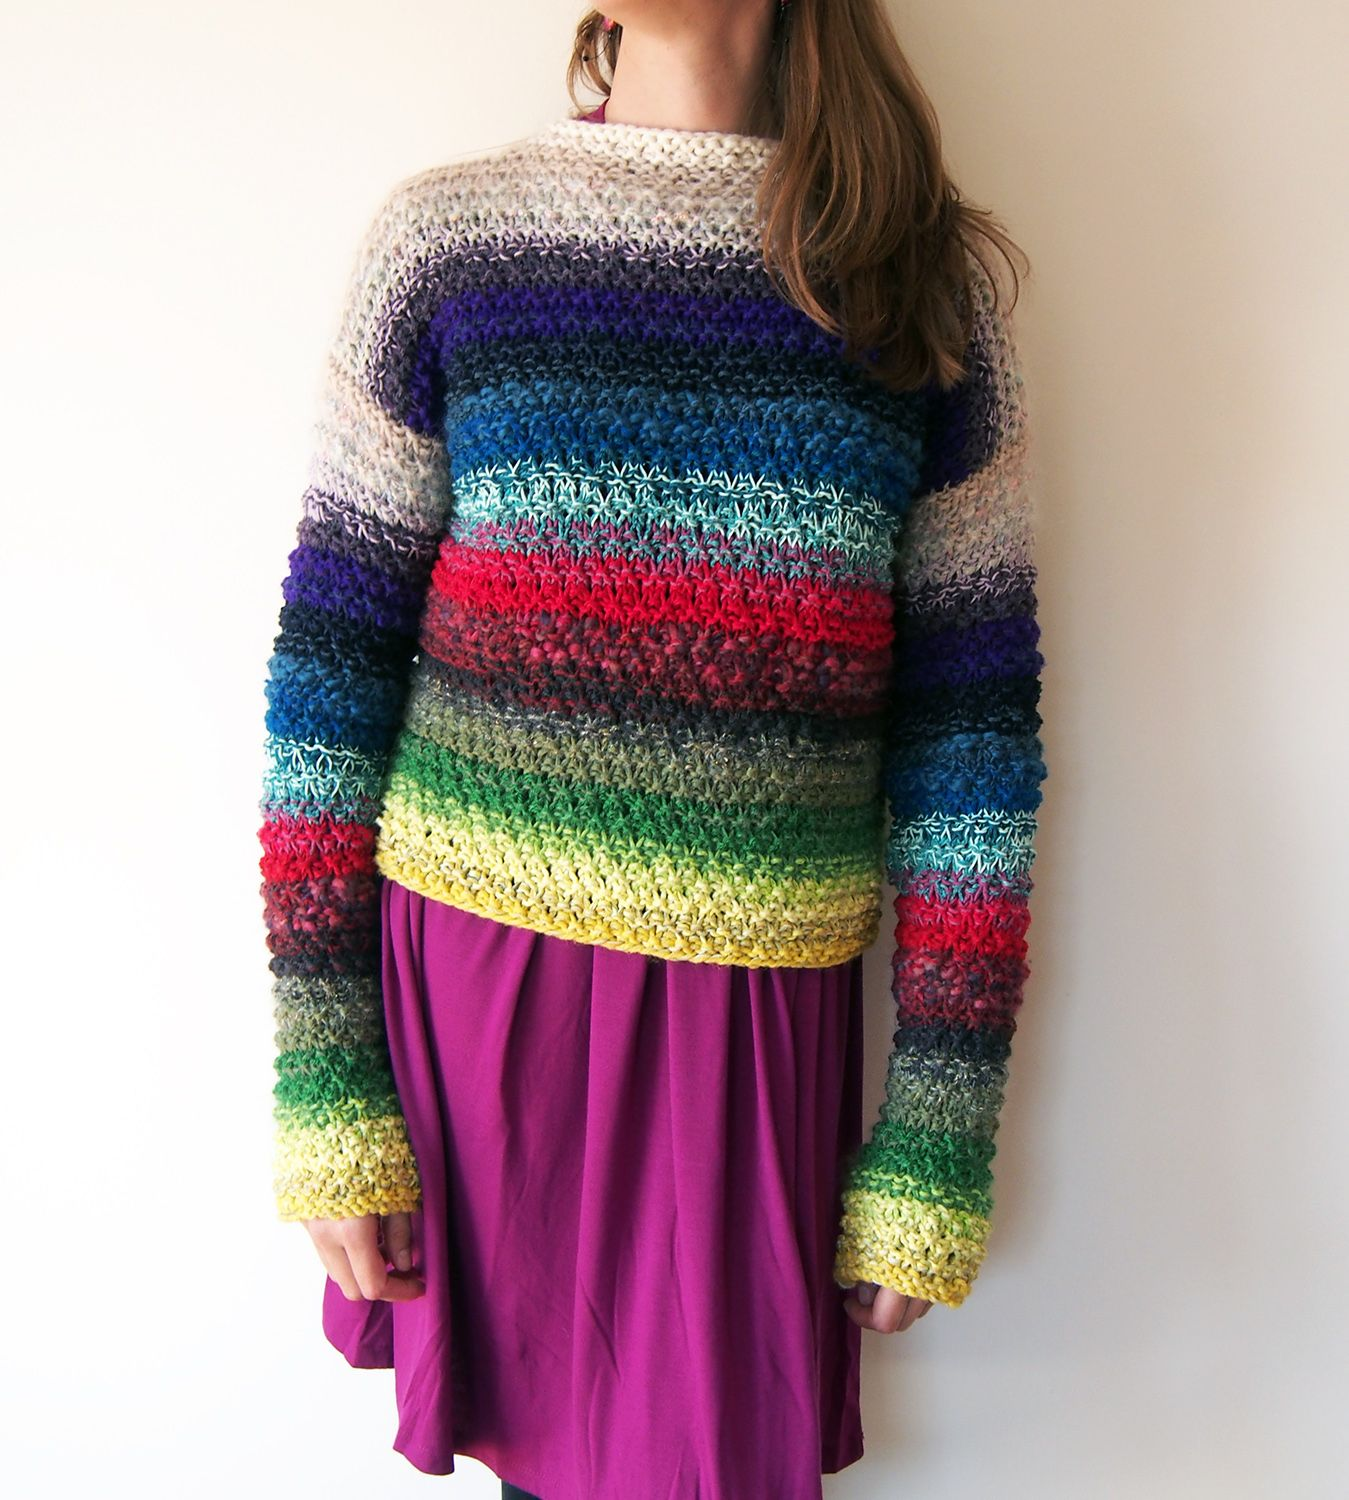 Dayana Knits: There Was A Whole Pullover In There?? Using Scraps For ...